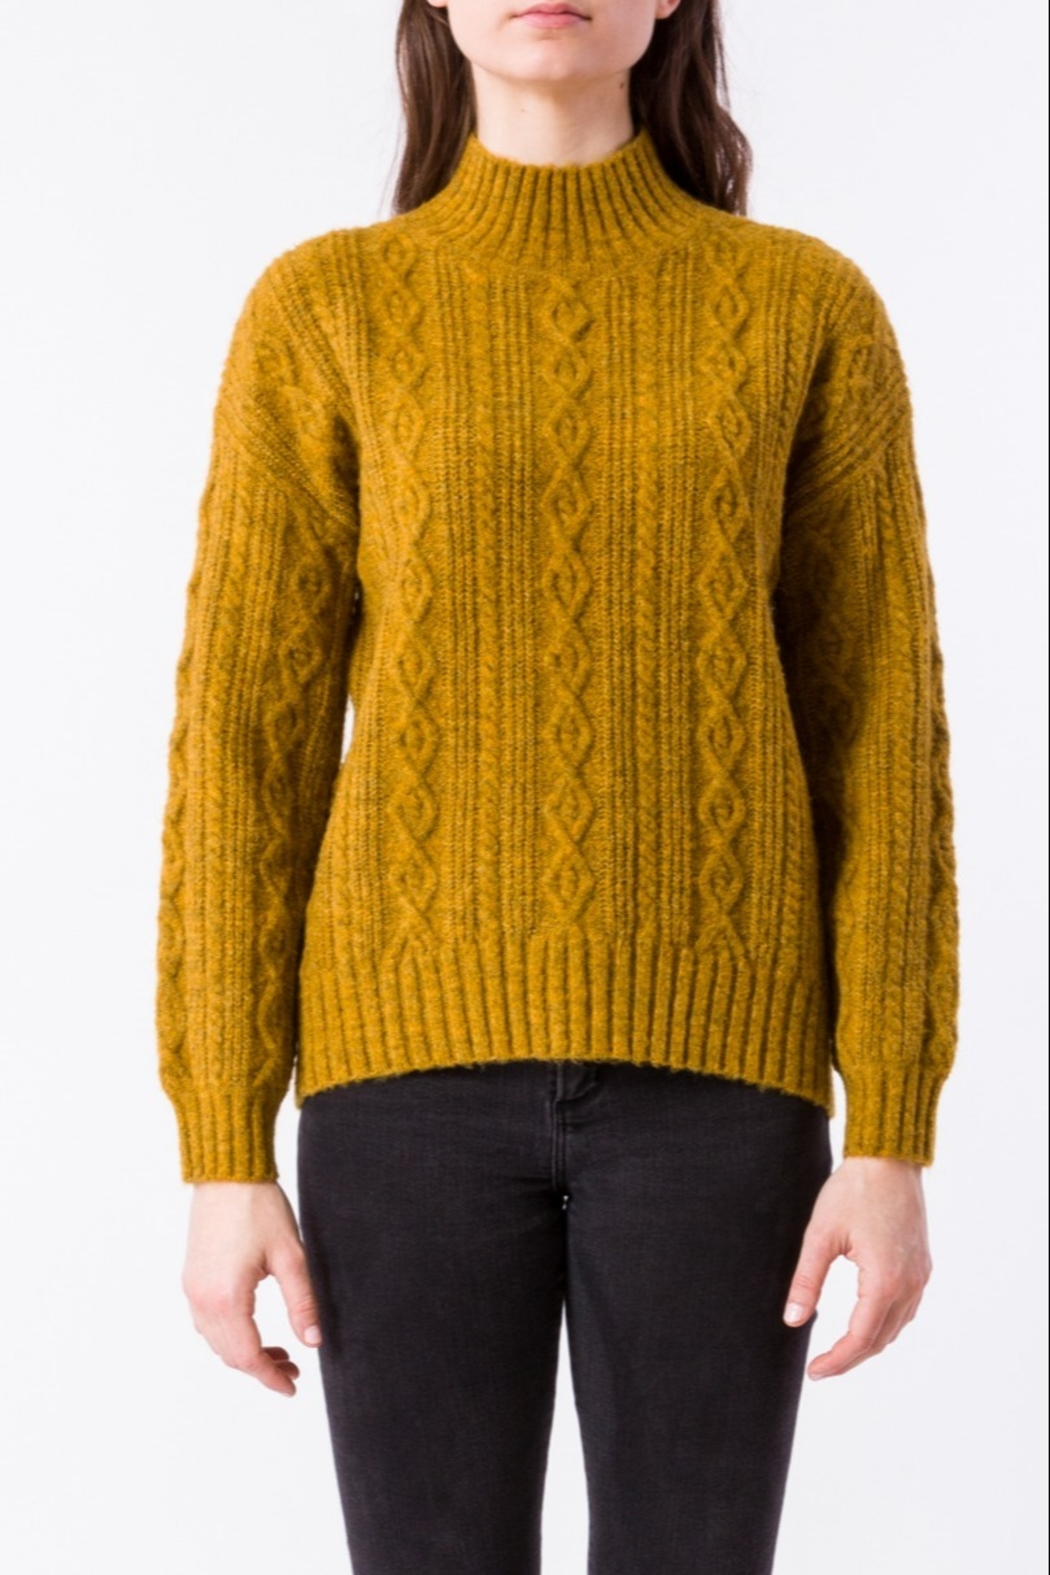 Kerisma Spice Cable-Knit Sweater - Front Cropped Image